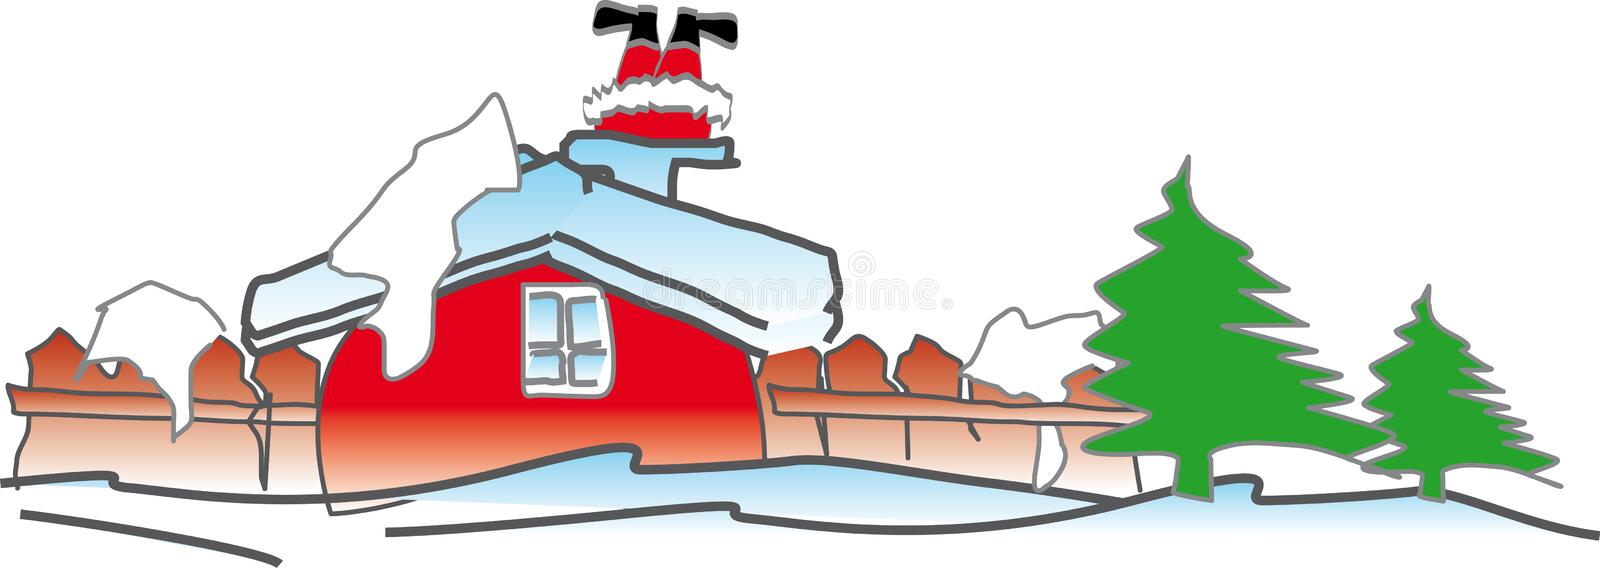 Santa in house chimney royalty free illustration